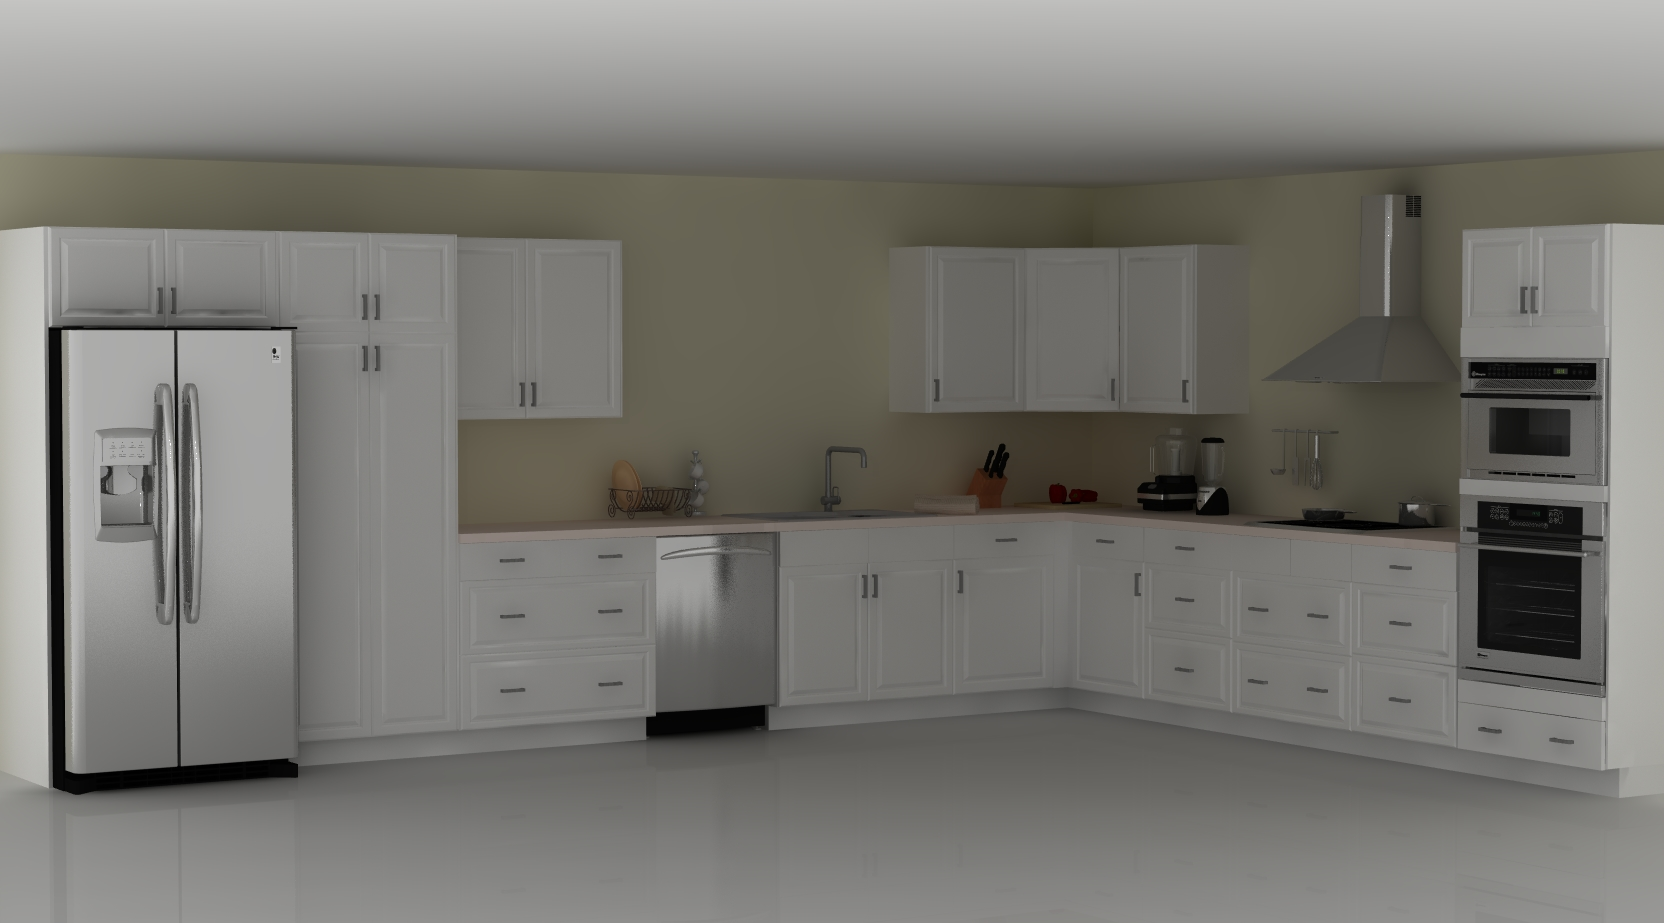 L Shaped Kitchen ikea kitchen designer tips: pros and cons of an l-shaped layout